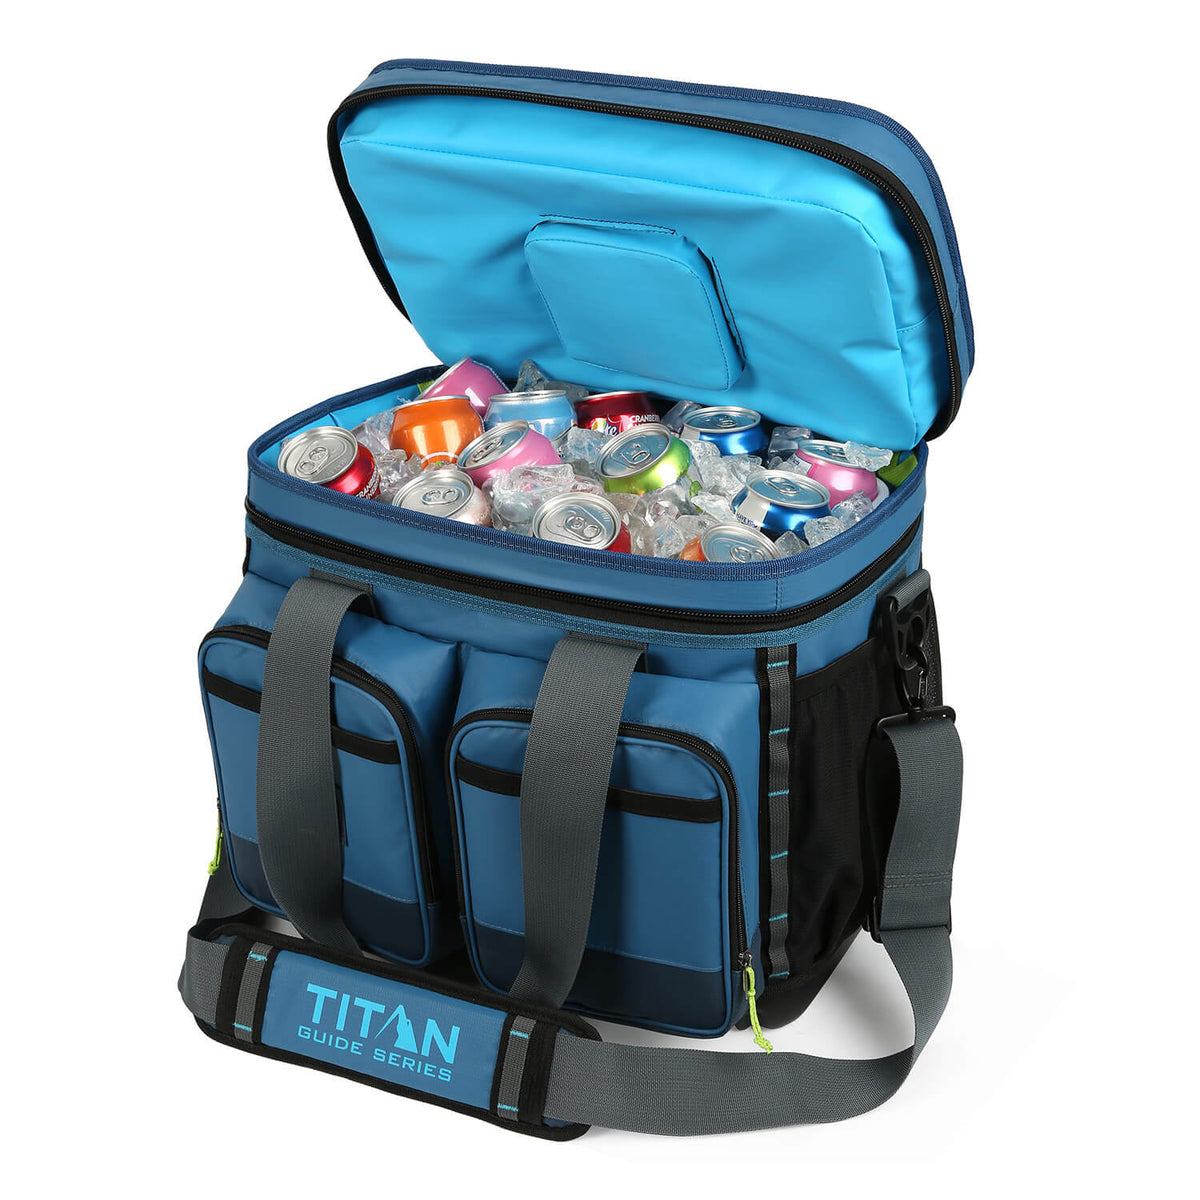 Titan Guide Series™ 36 Can Cooler - Open, propped